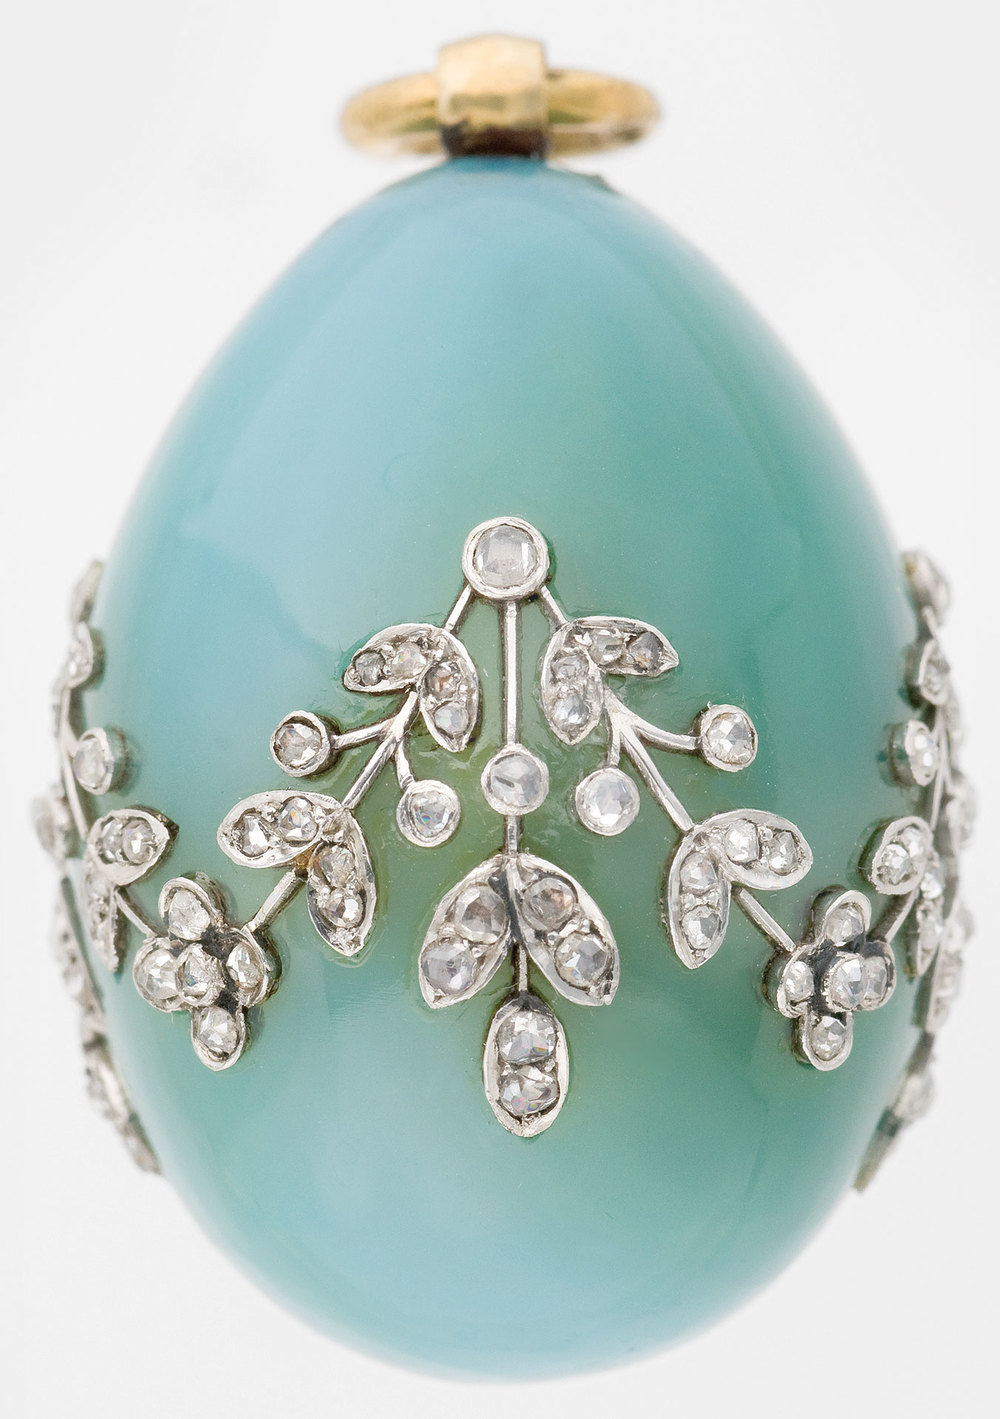 Carl Fabergé (1846–1920), Fabergé workshop, Mikhail Perkhin (workmaster). Miniature Easter Egg Pendant, about 1900. Chalcedony, gold, white gold, diamonds. 3.2 x 2.2 cm. Virginia Museum of Fine Arts, Bequest of Lillian Thomas Pratt. Also featured in Faberge, Jeweller to the Czars last year at the Montreal Museum of Fine Arts. (Photo courtesy The Montreal Museum of Fine Arts)